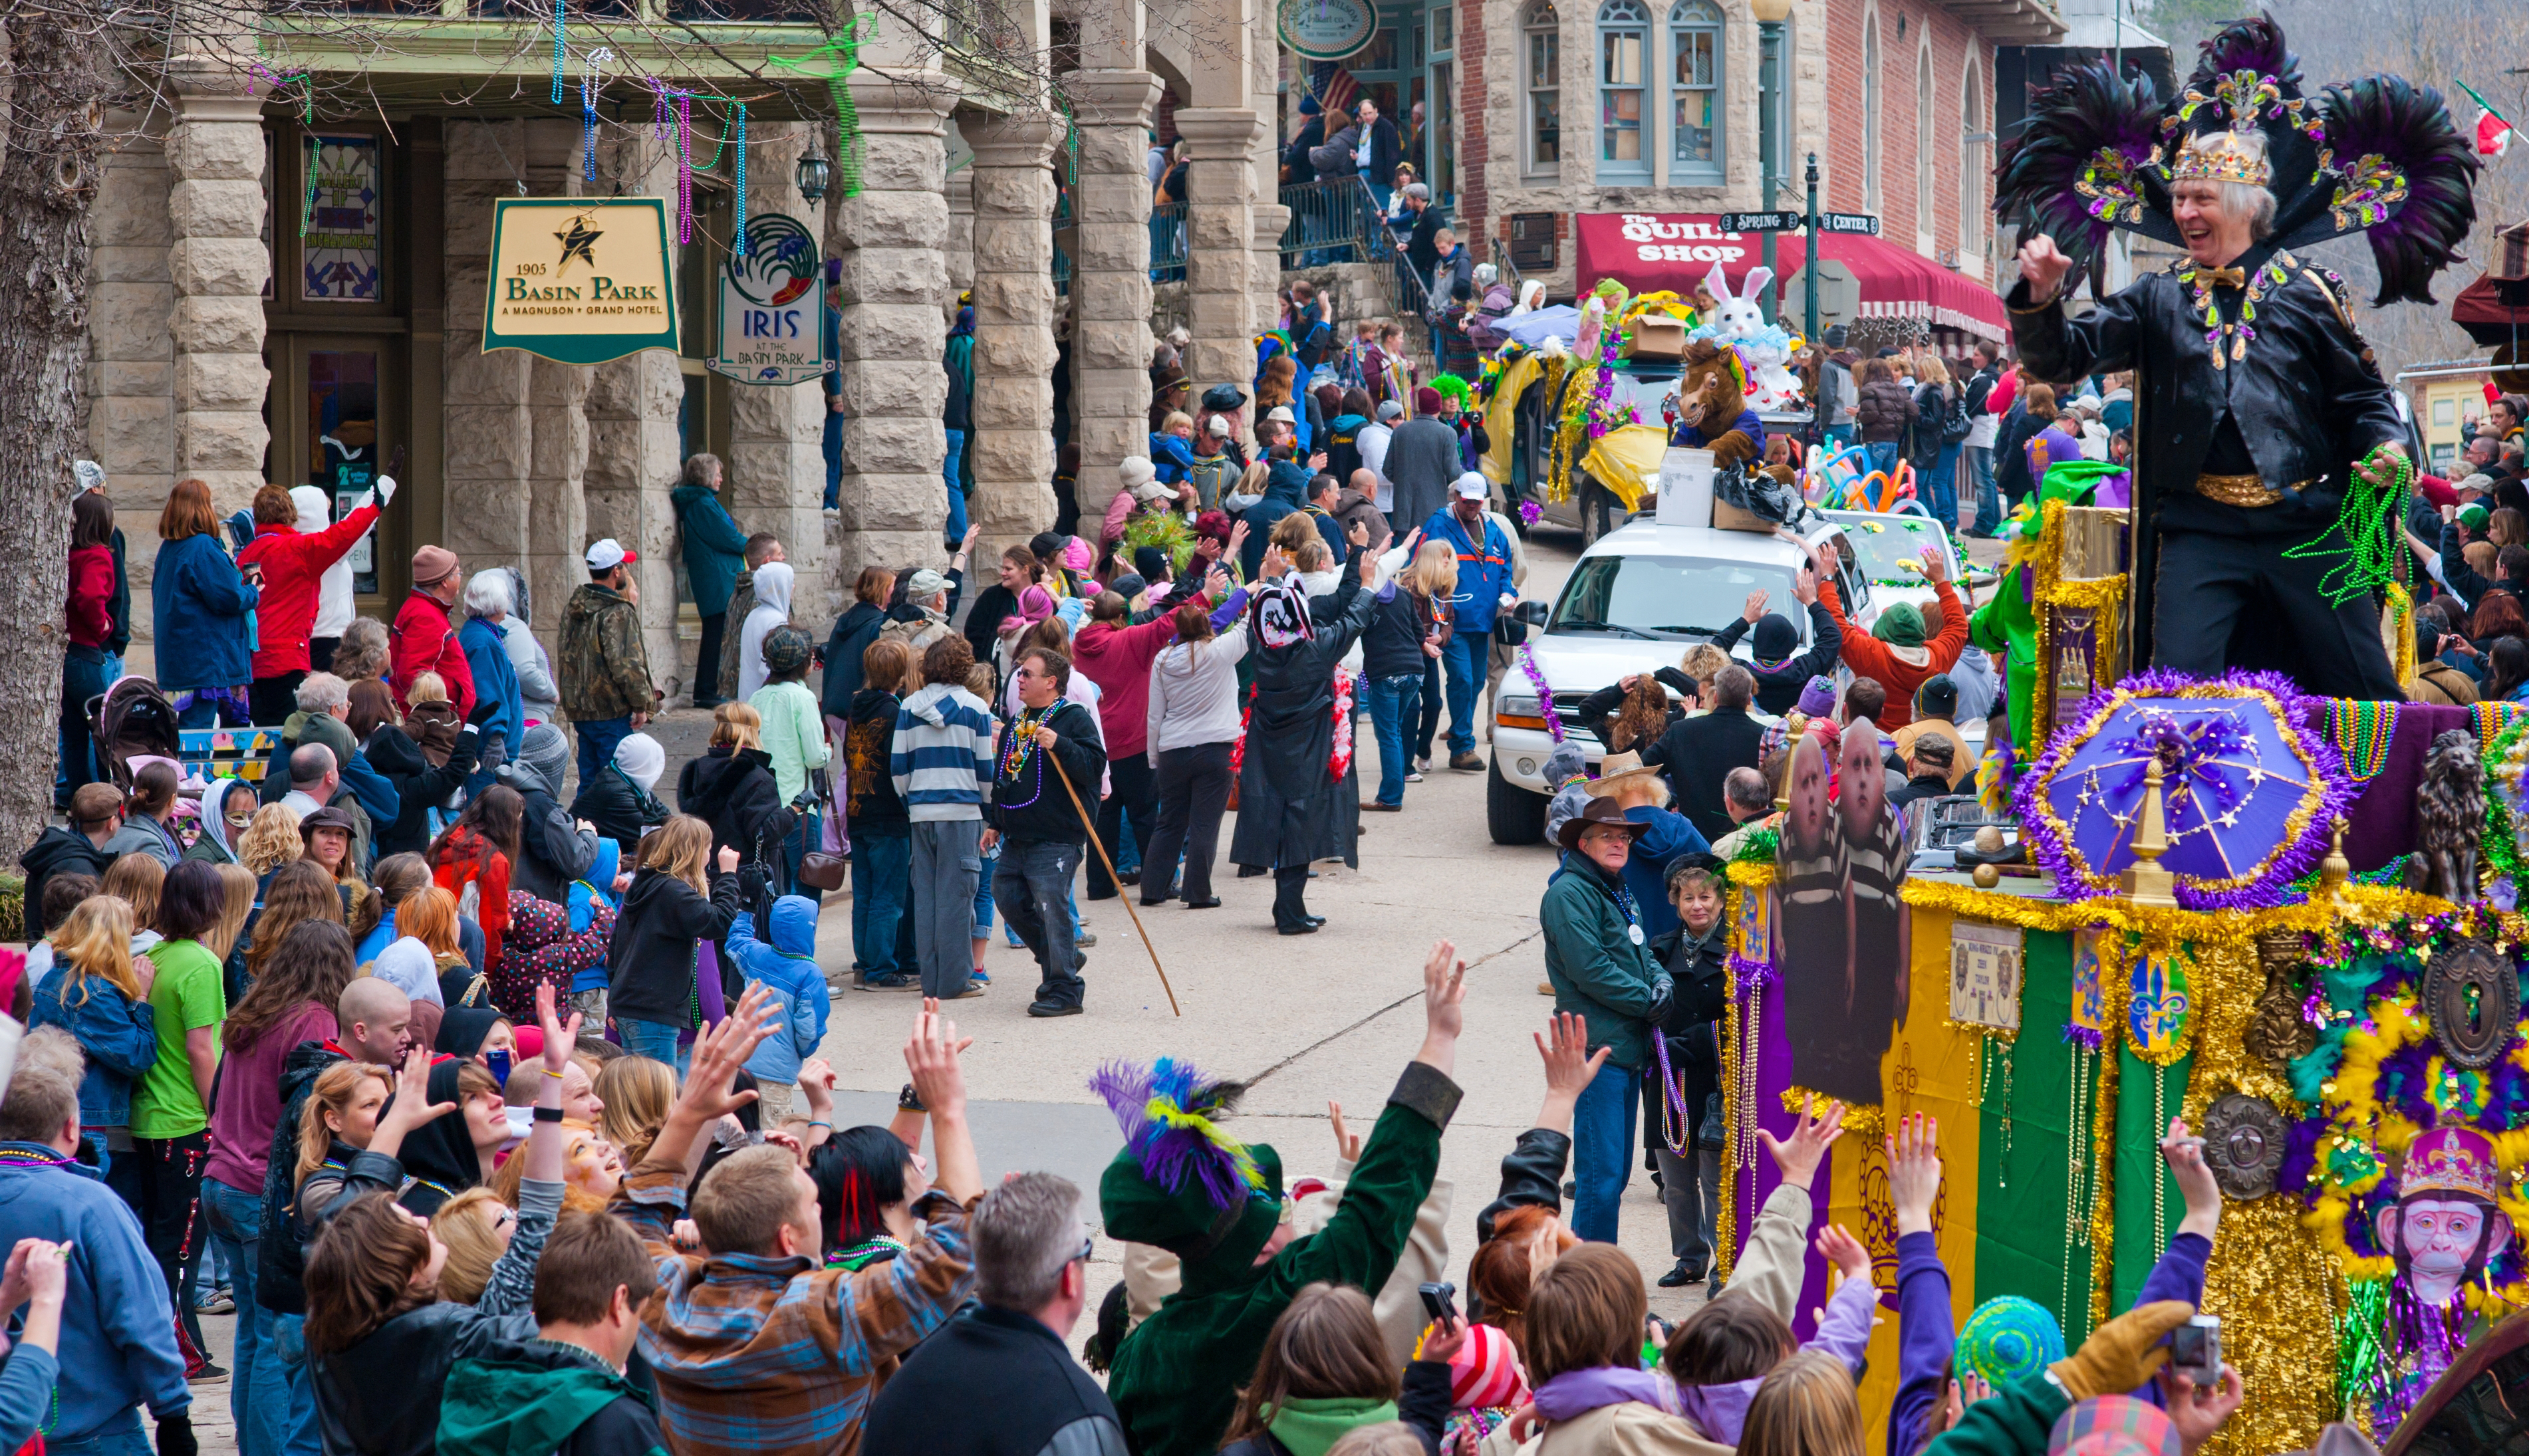 Eureka Springs 2020 Christmas Parade Winners Uncategorized – Page 4 – 1886 Crescent Hotel & Spa